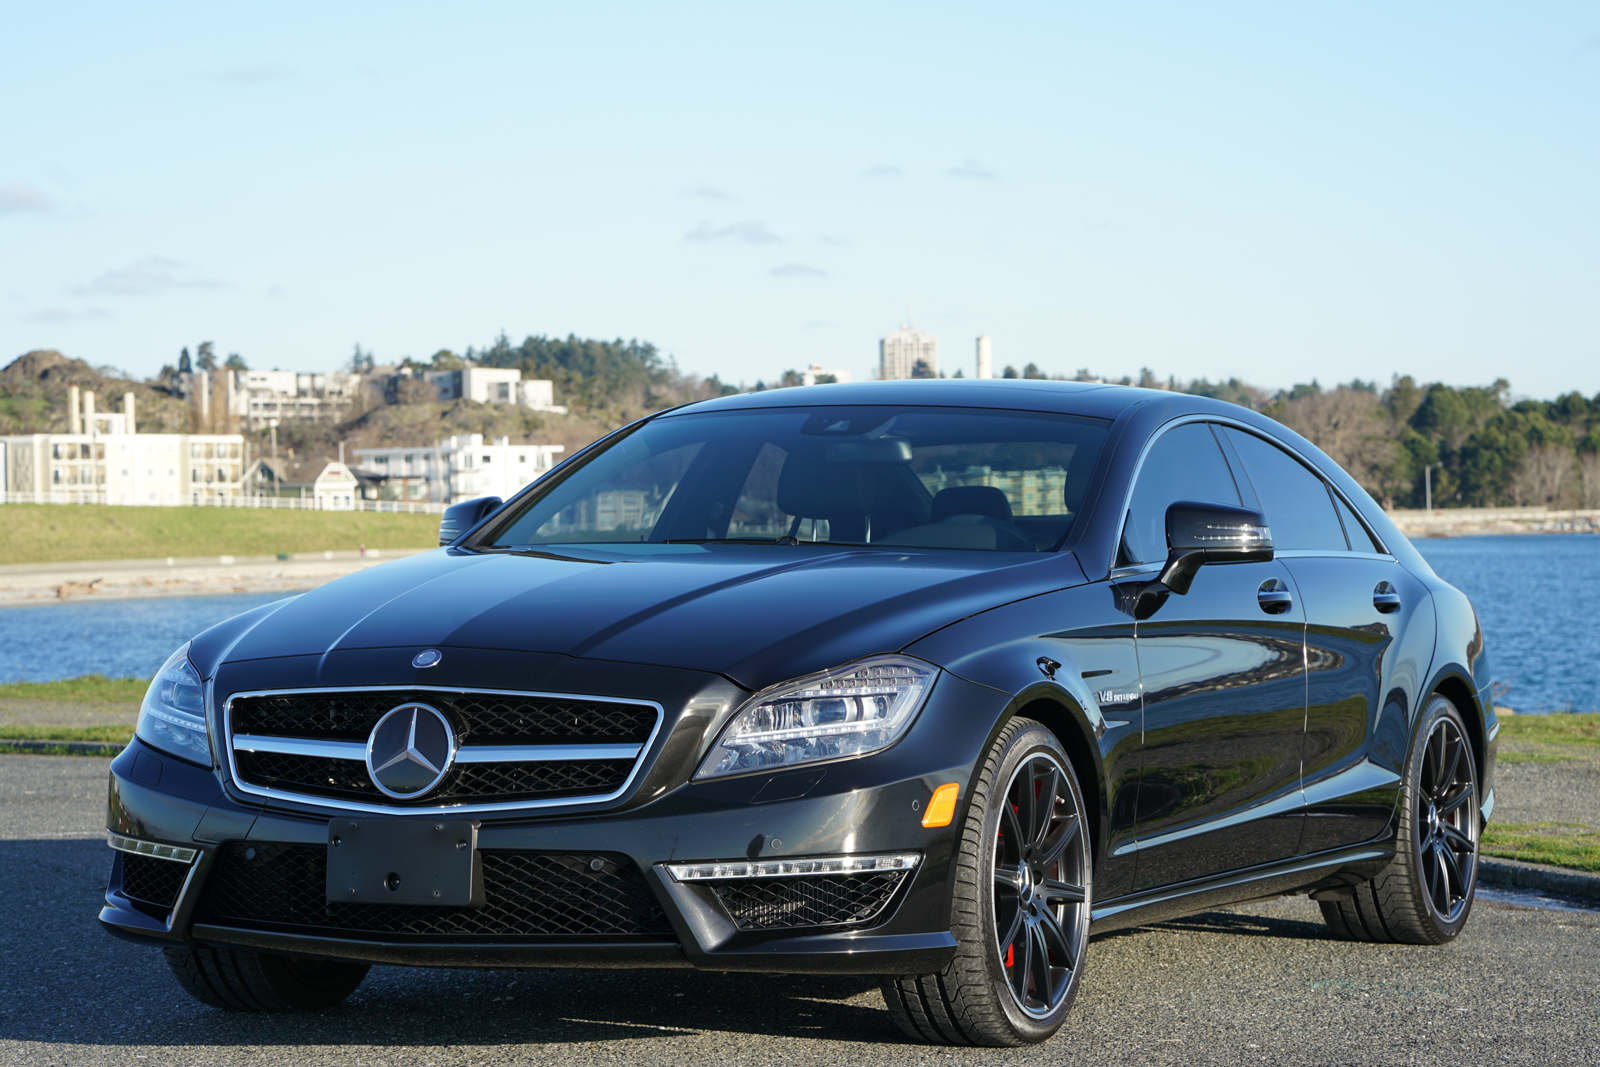 2014 mercedes benz cls 63 amg s model for sale silver